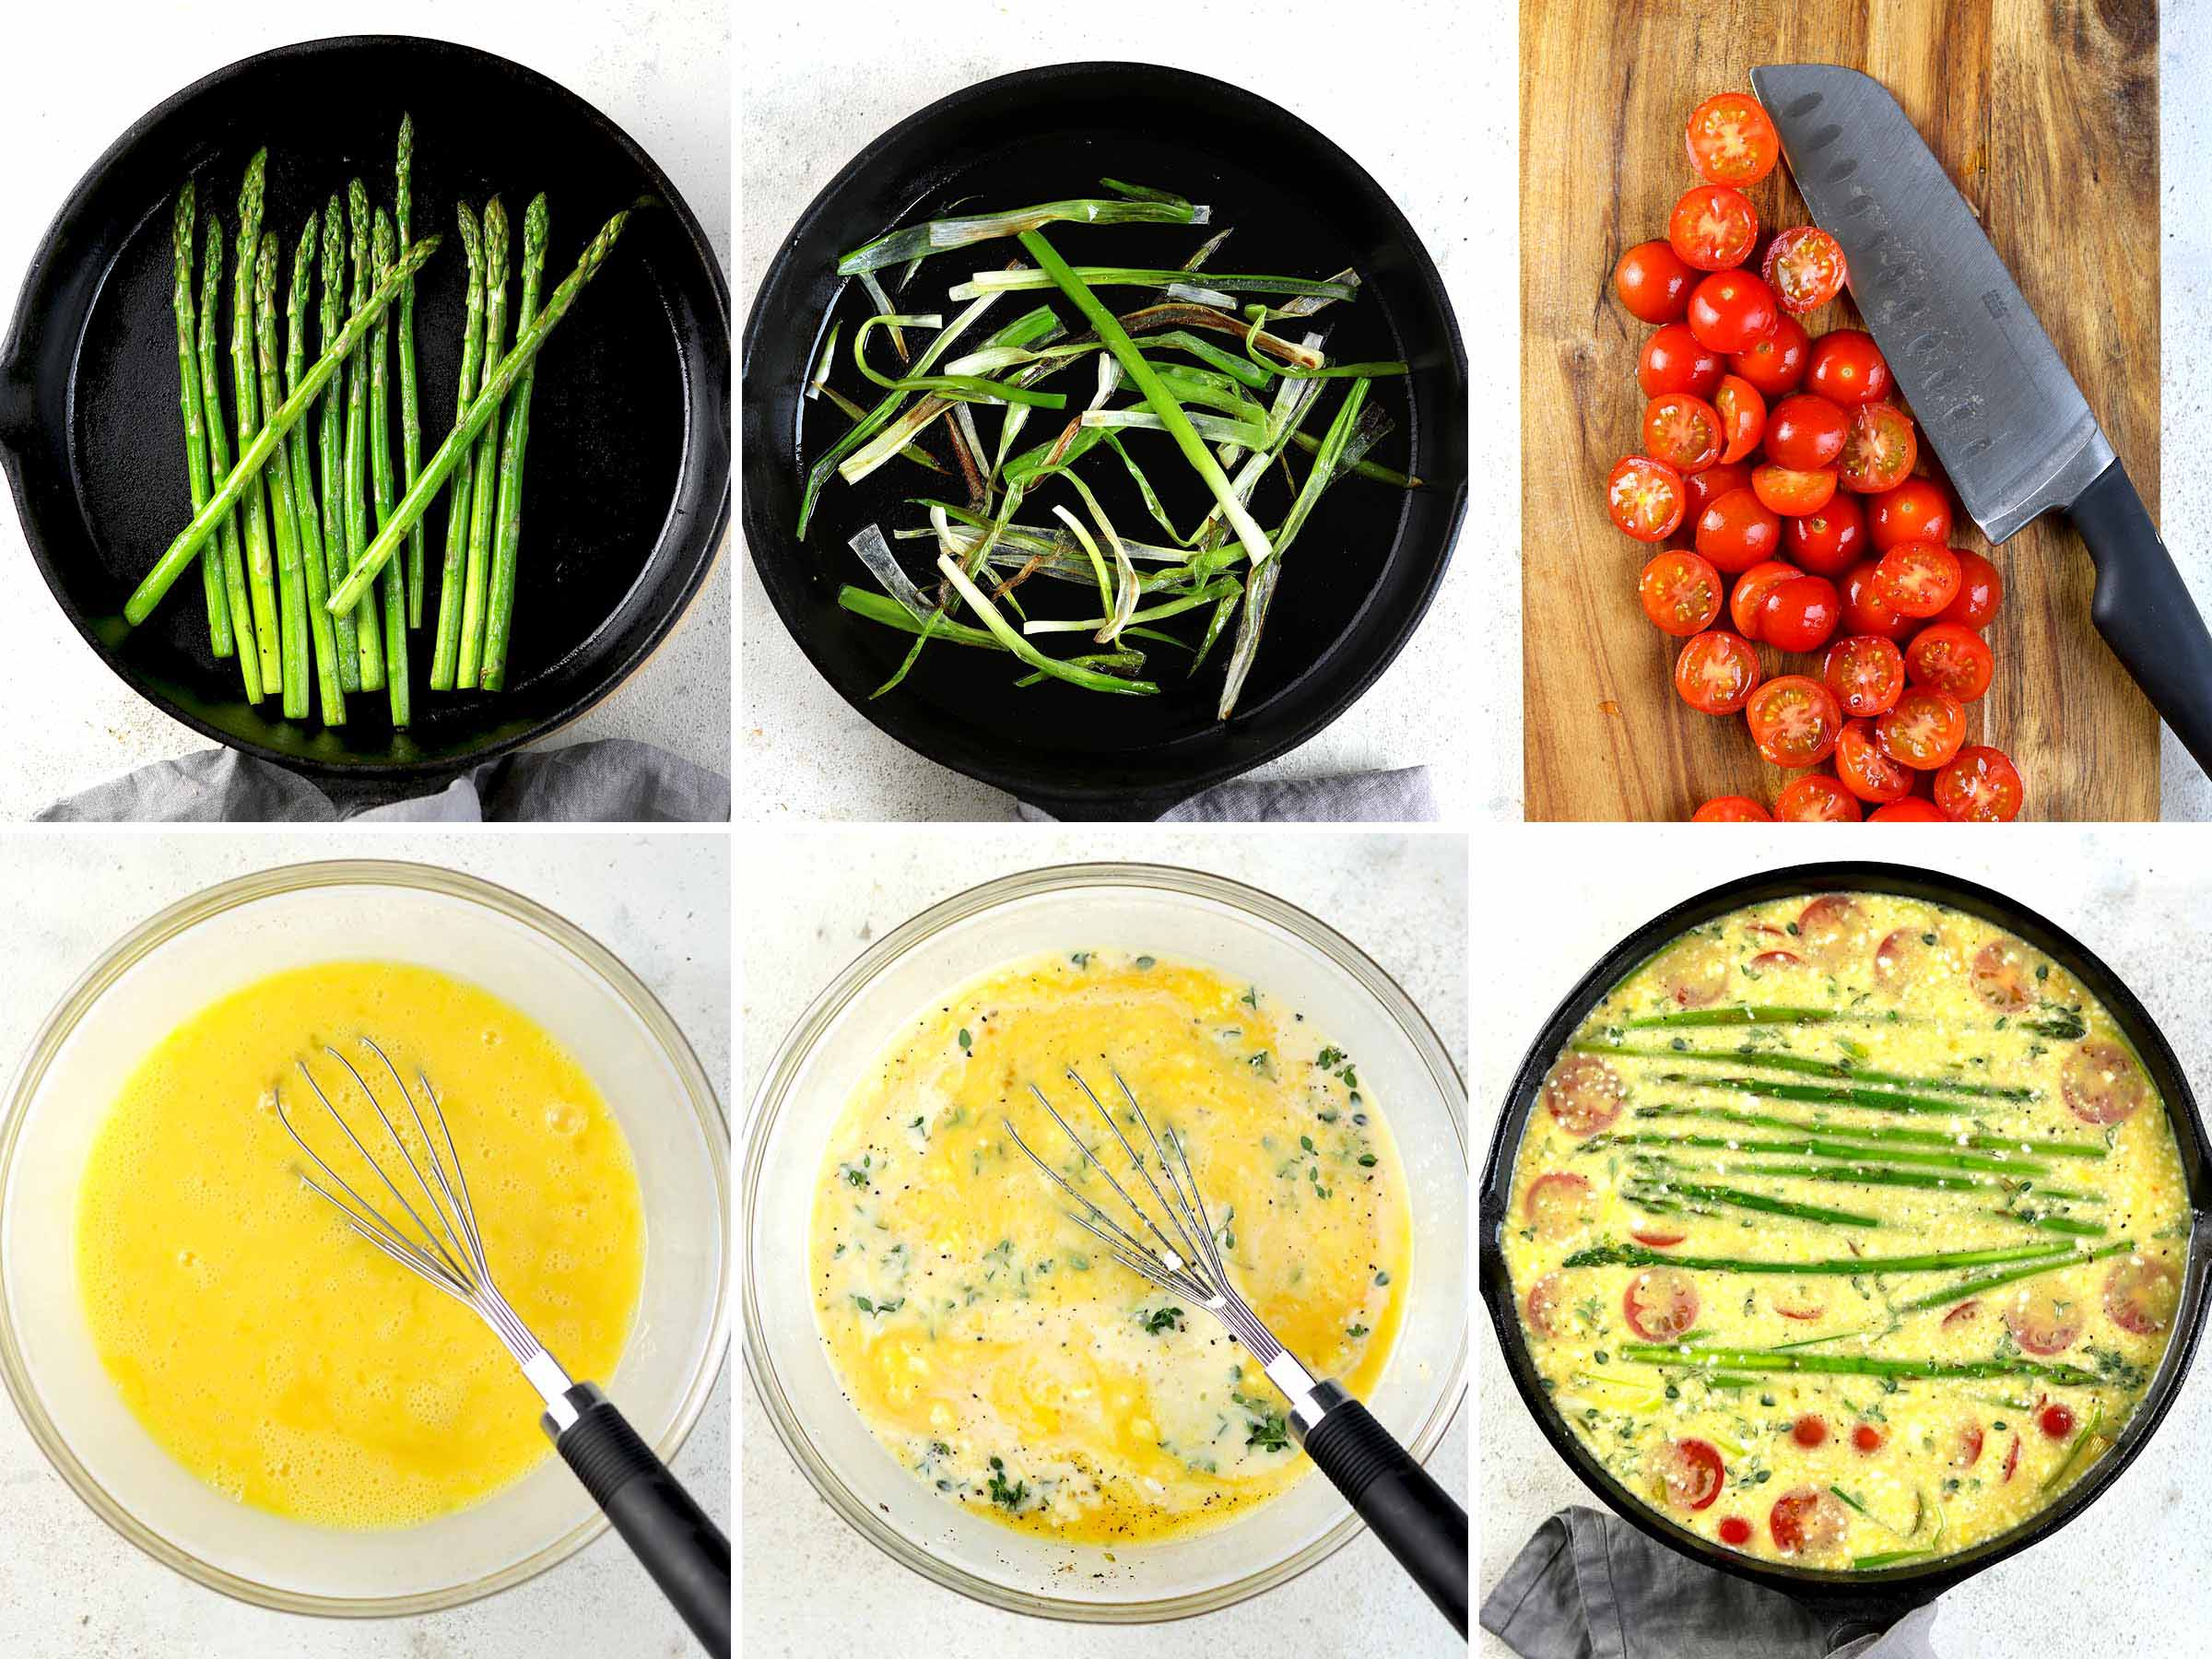 process images of steps to make recipes